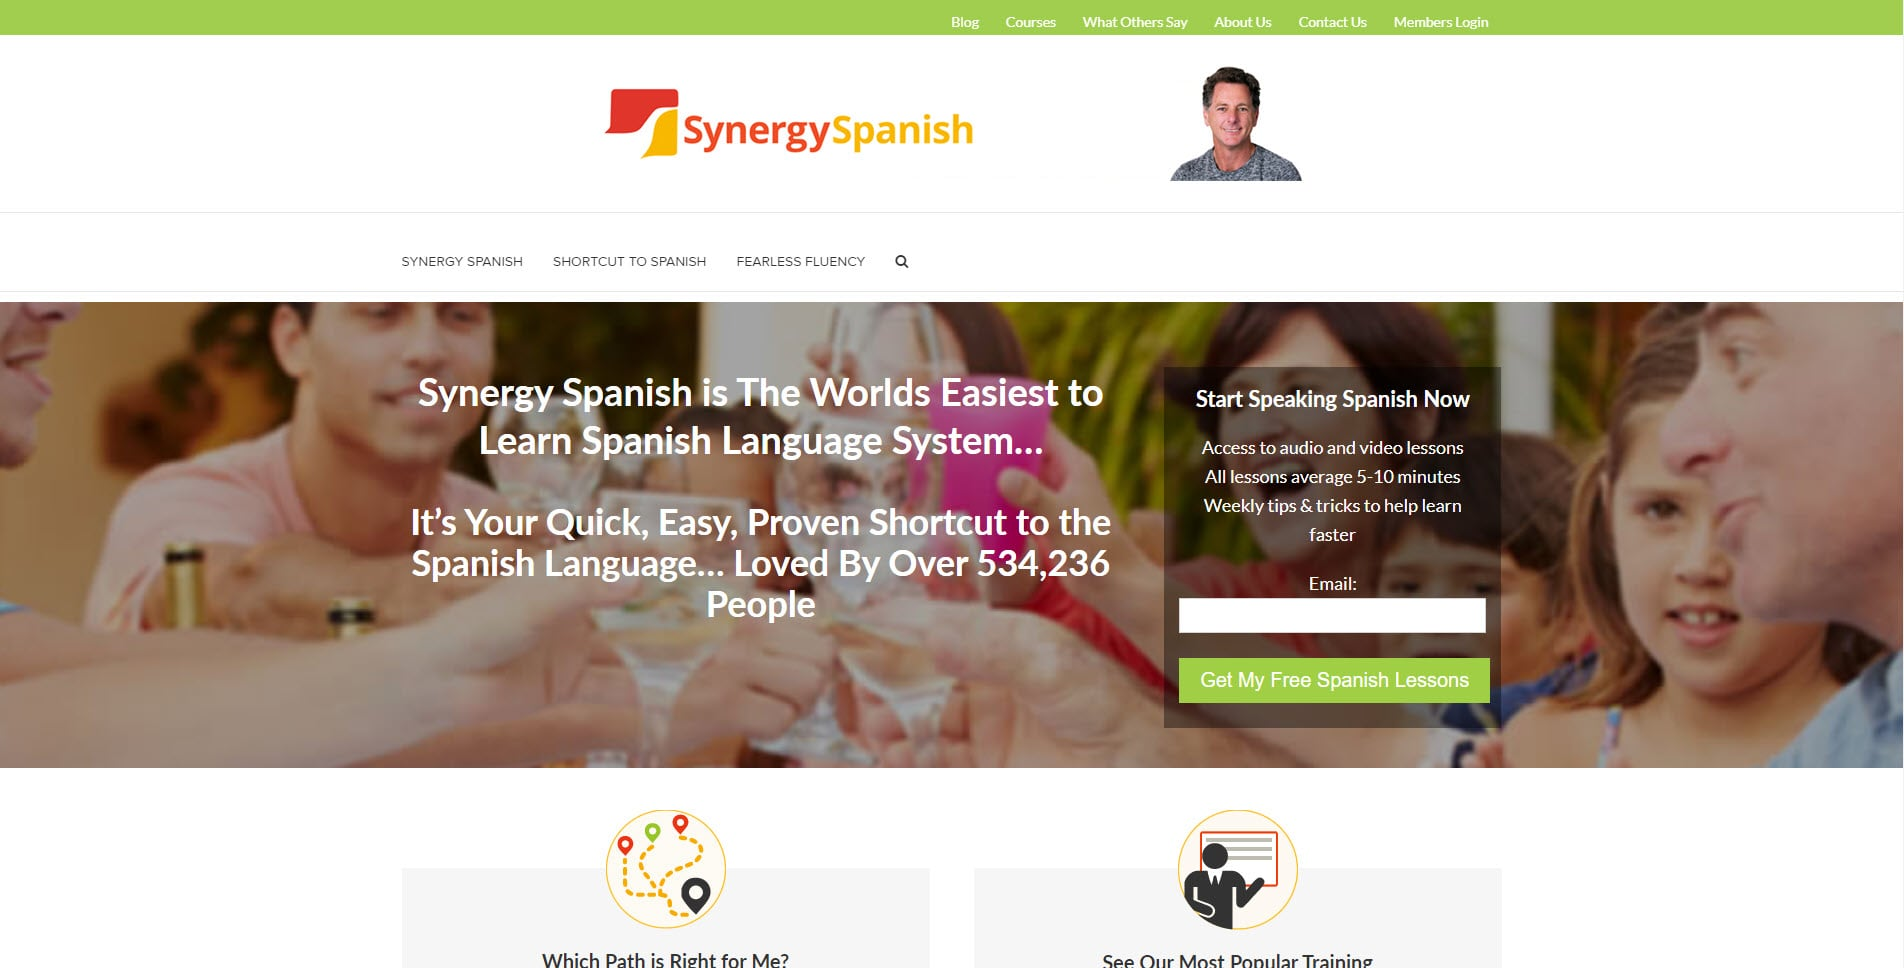 Synergy Spanish